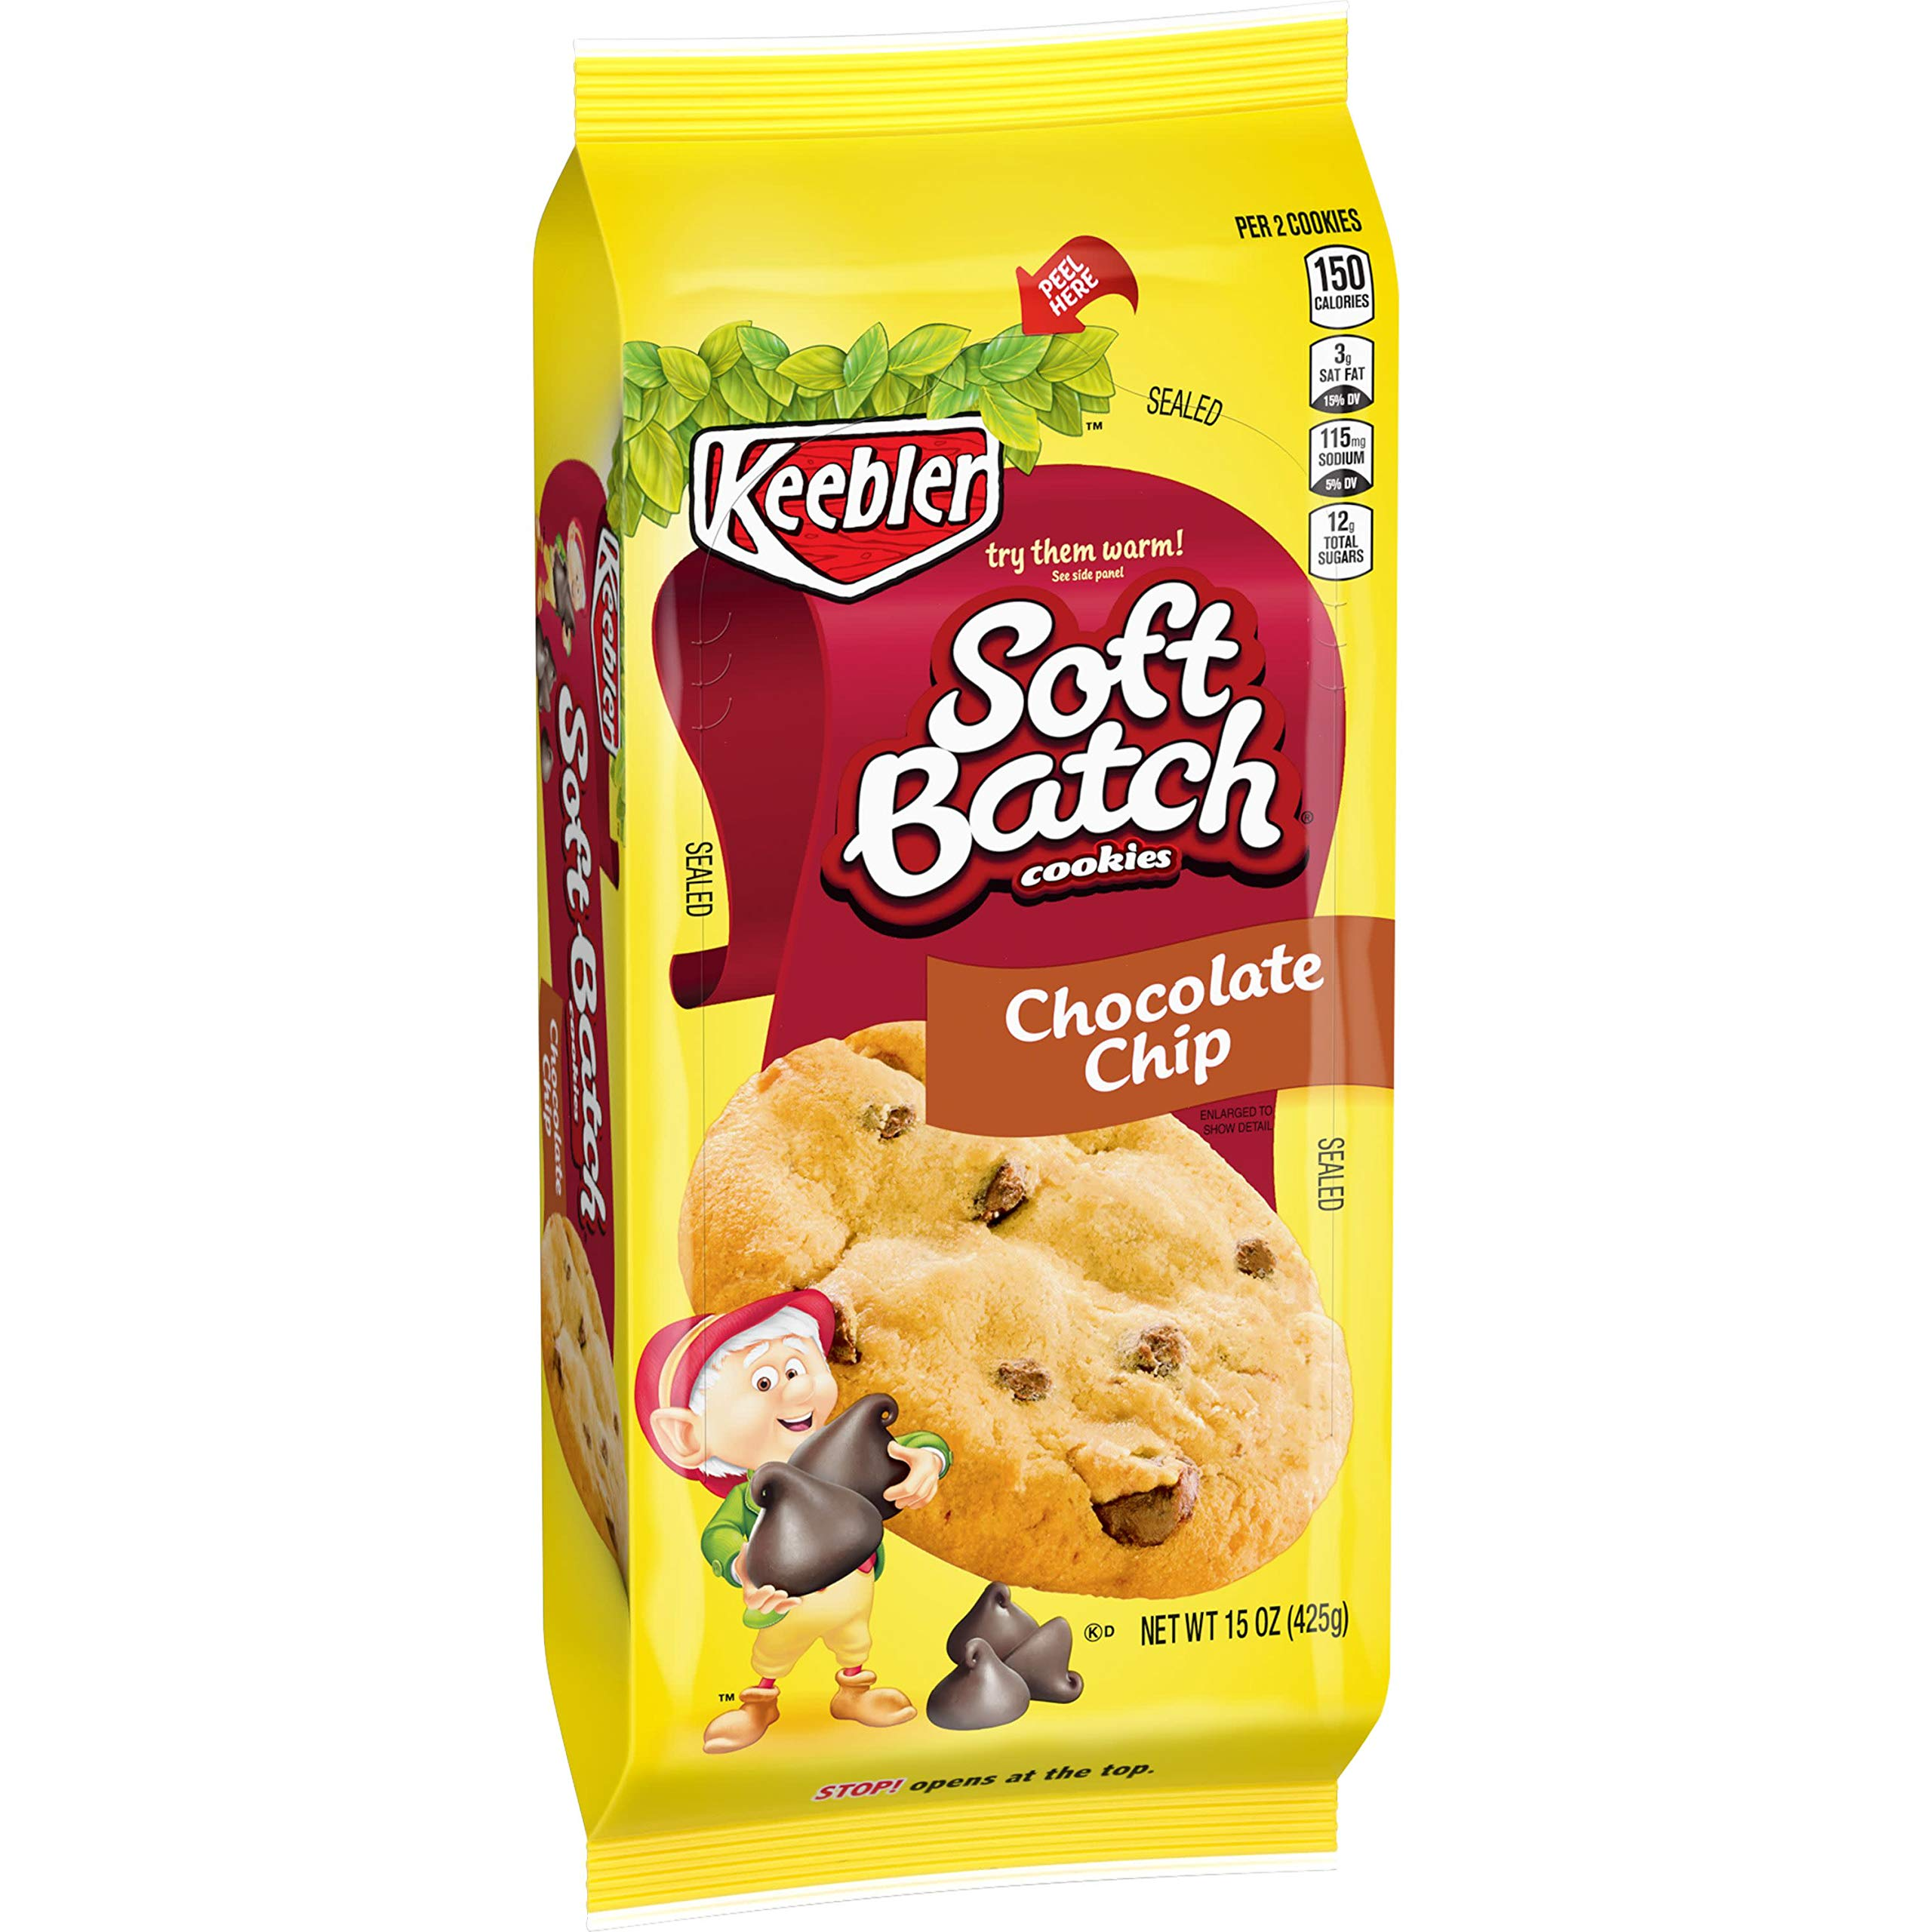 KeeblerSoft Batch Cookies, Chocolate Chip, 15 ozTray(Pack of 12)